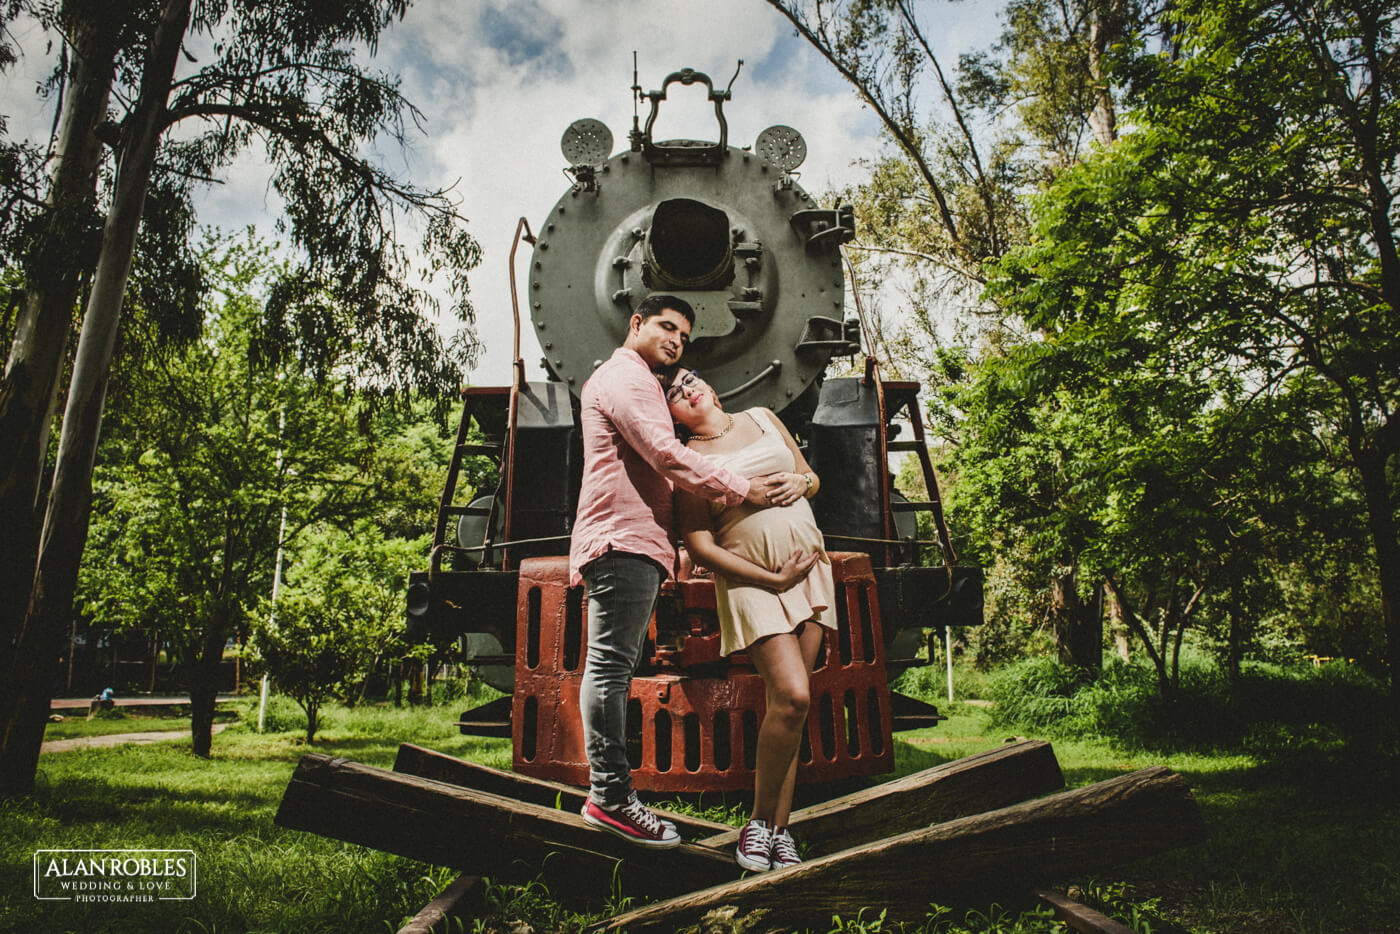 Tren Alan Robles Wedding & Love Photographer - Fotografo Bodas Guadalajara